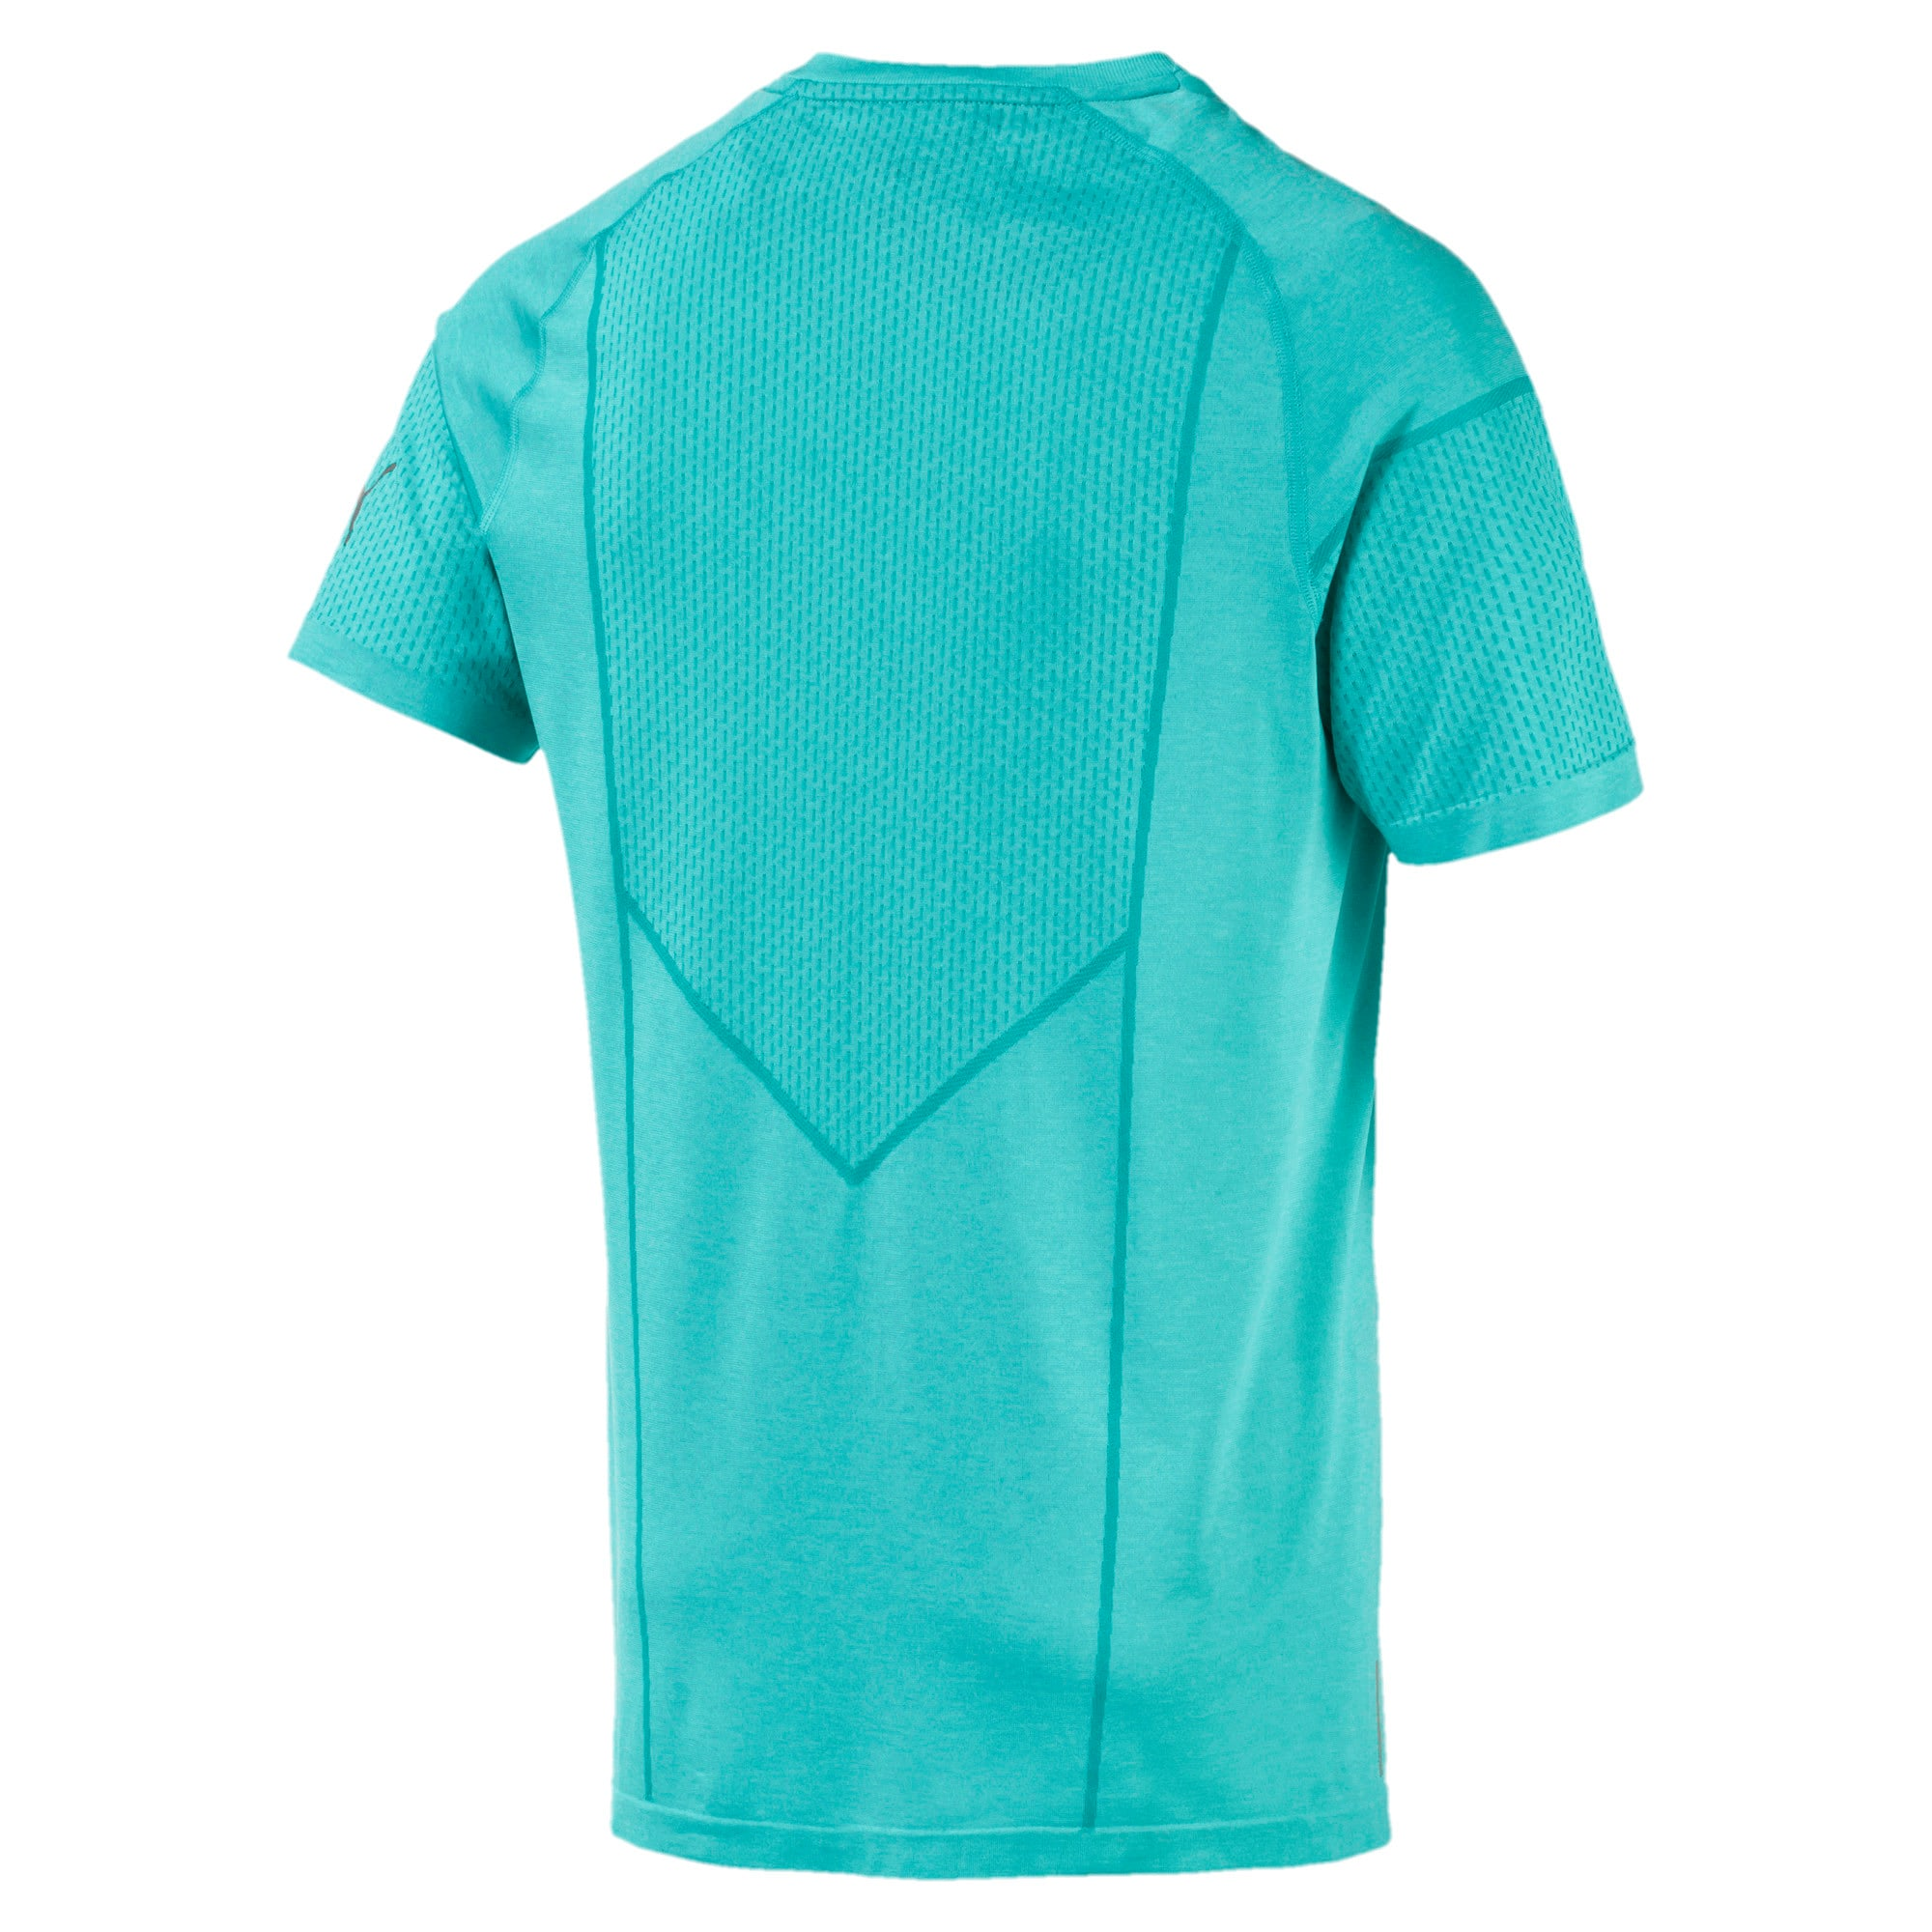 Thumbnail 5 of Reactive evoKNIT Men's Tee, Blue Turquoise Heather, medium-IND